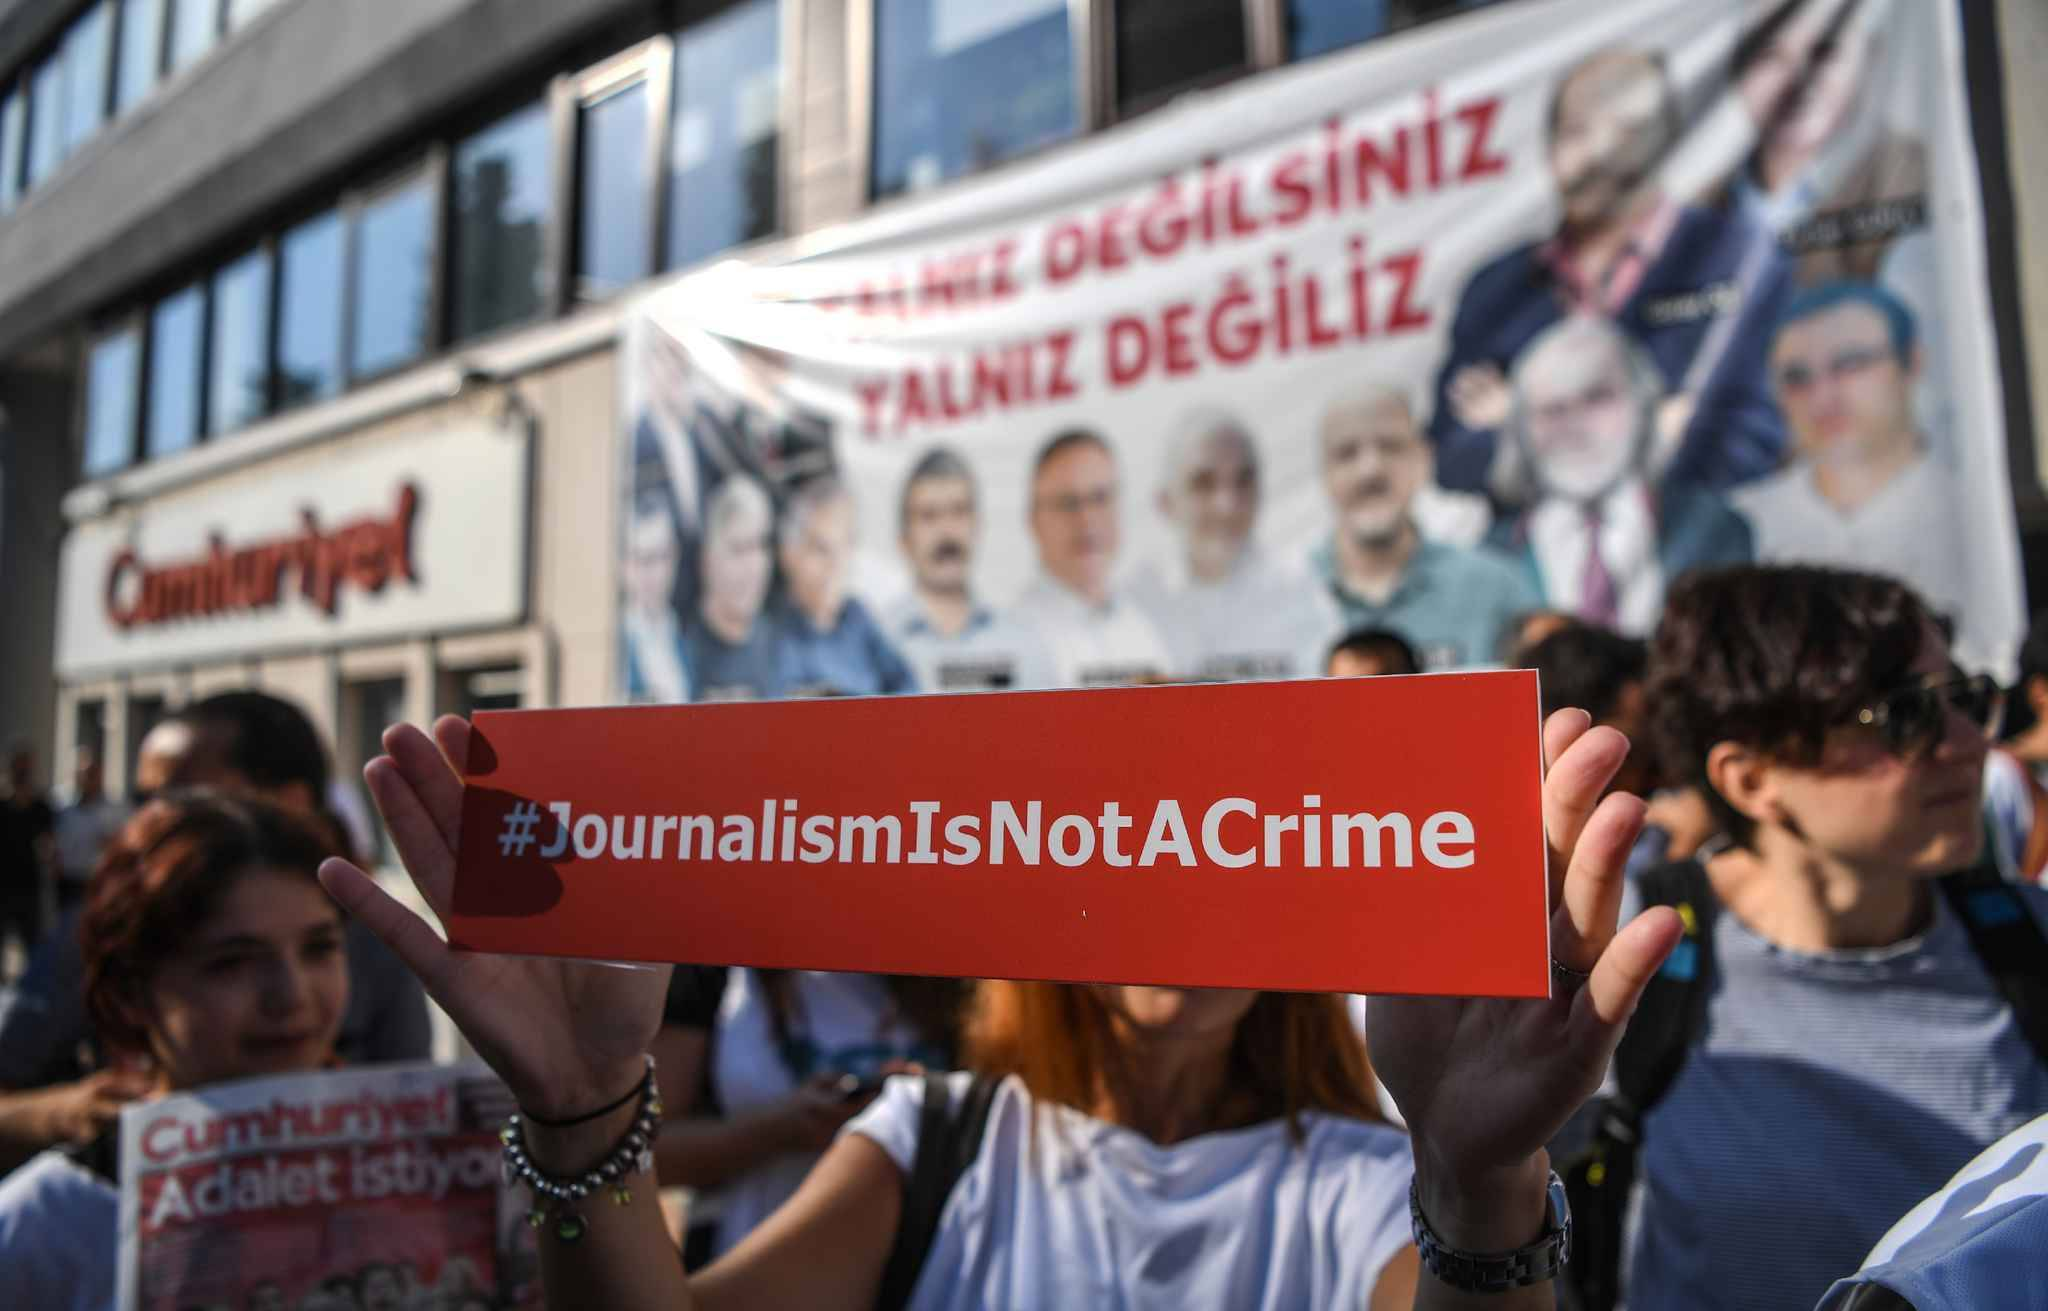 A journalist holds a banner on July 24, 2017 outside the headquarters of opposition daily newspaper Cumhuriyet in Istanbul.  Seventeen directors and journalists from one of Turkey's most respected opposition newspapers go on trial on July 24 after spending over eight months behind bars in a case which has raised new alarm over press freedoms under President Recep Tayyip Erdogan.